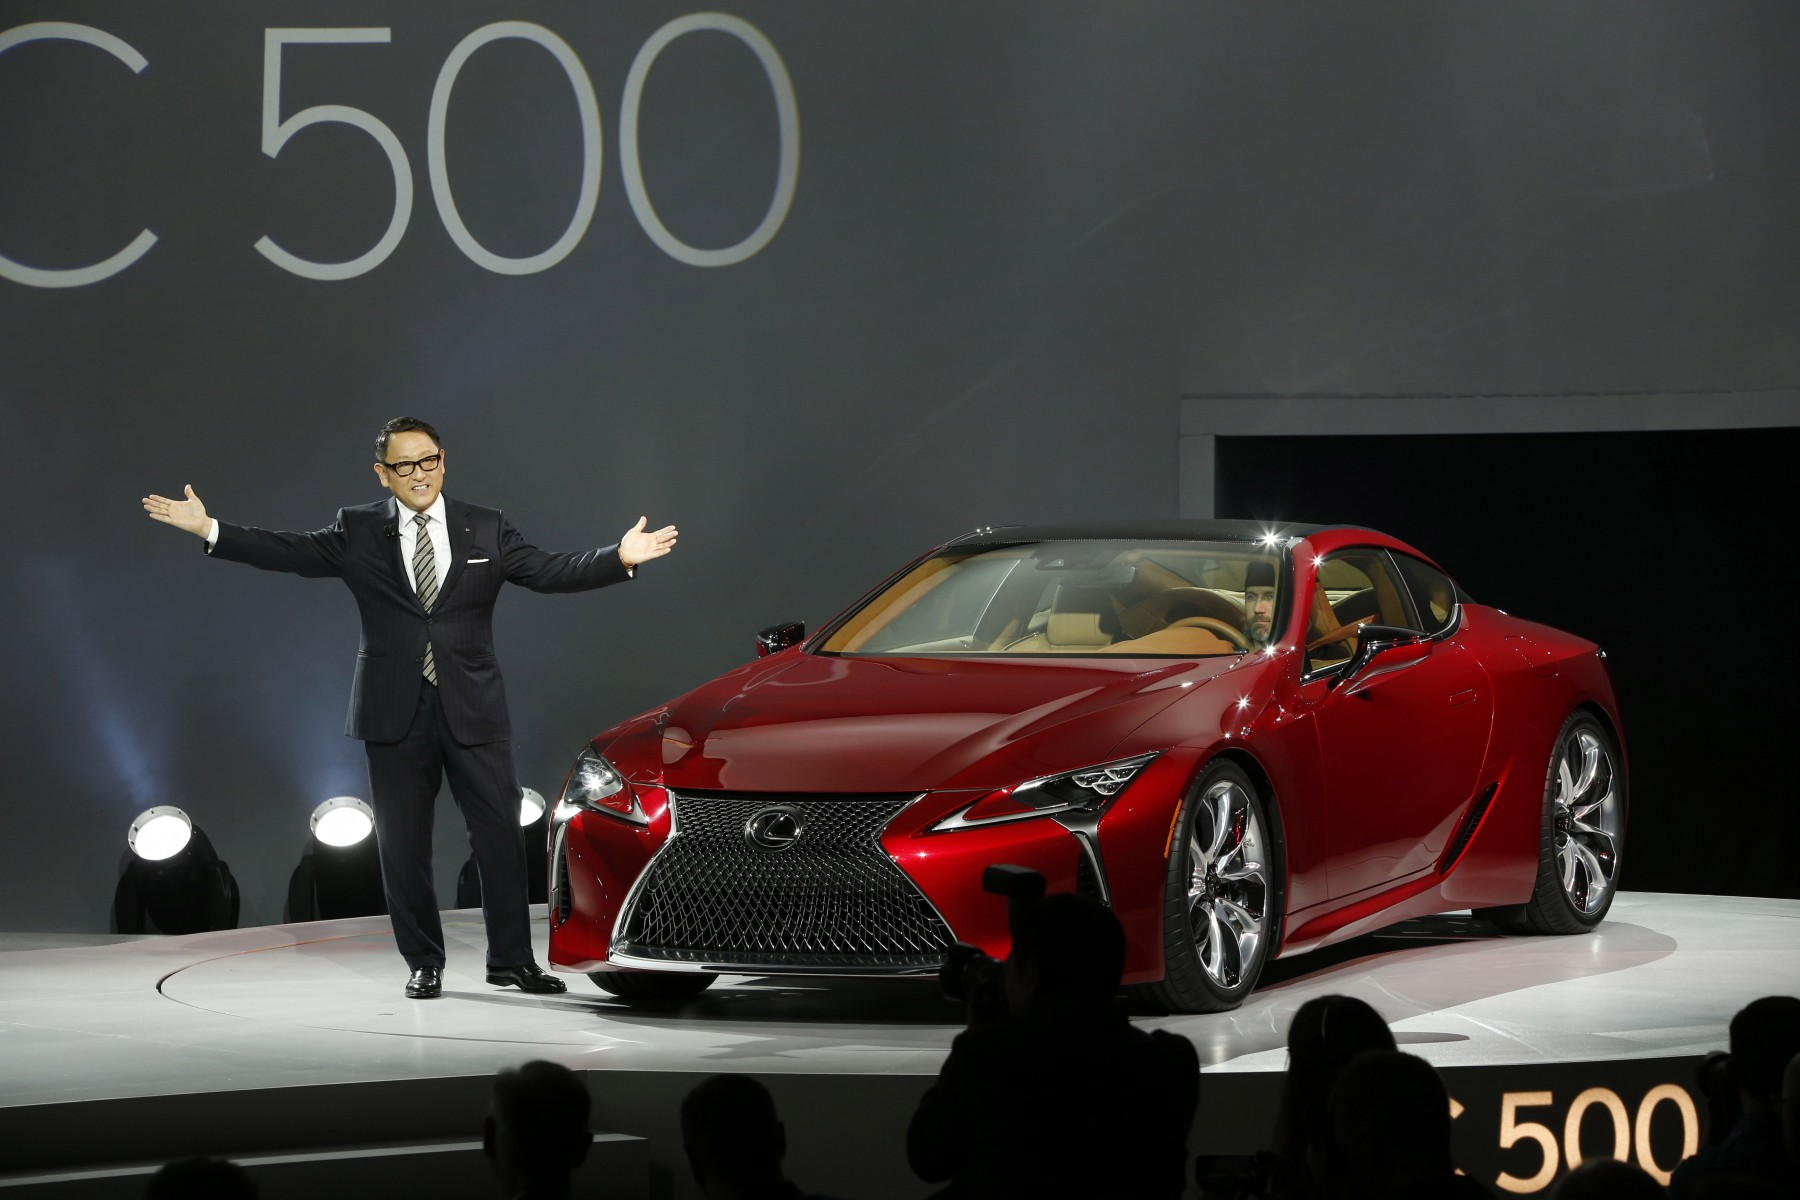 2016-naias-lexus-lc-press-conference-010.jpg